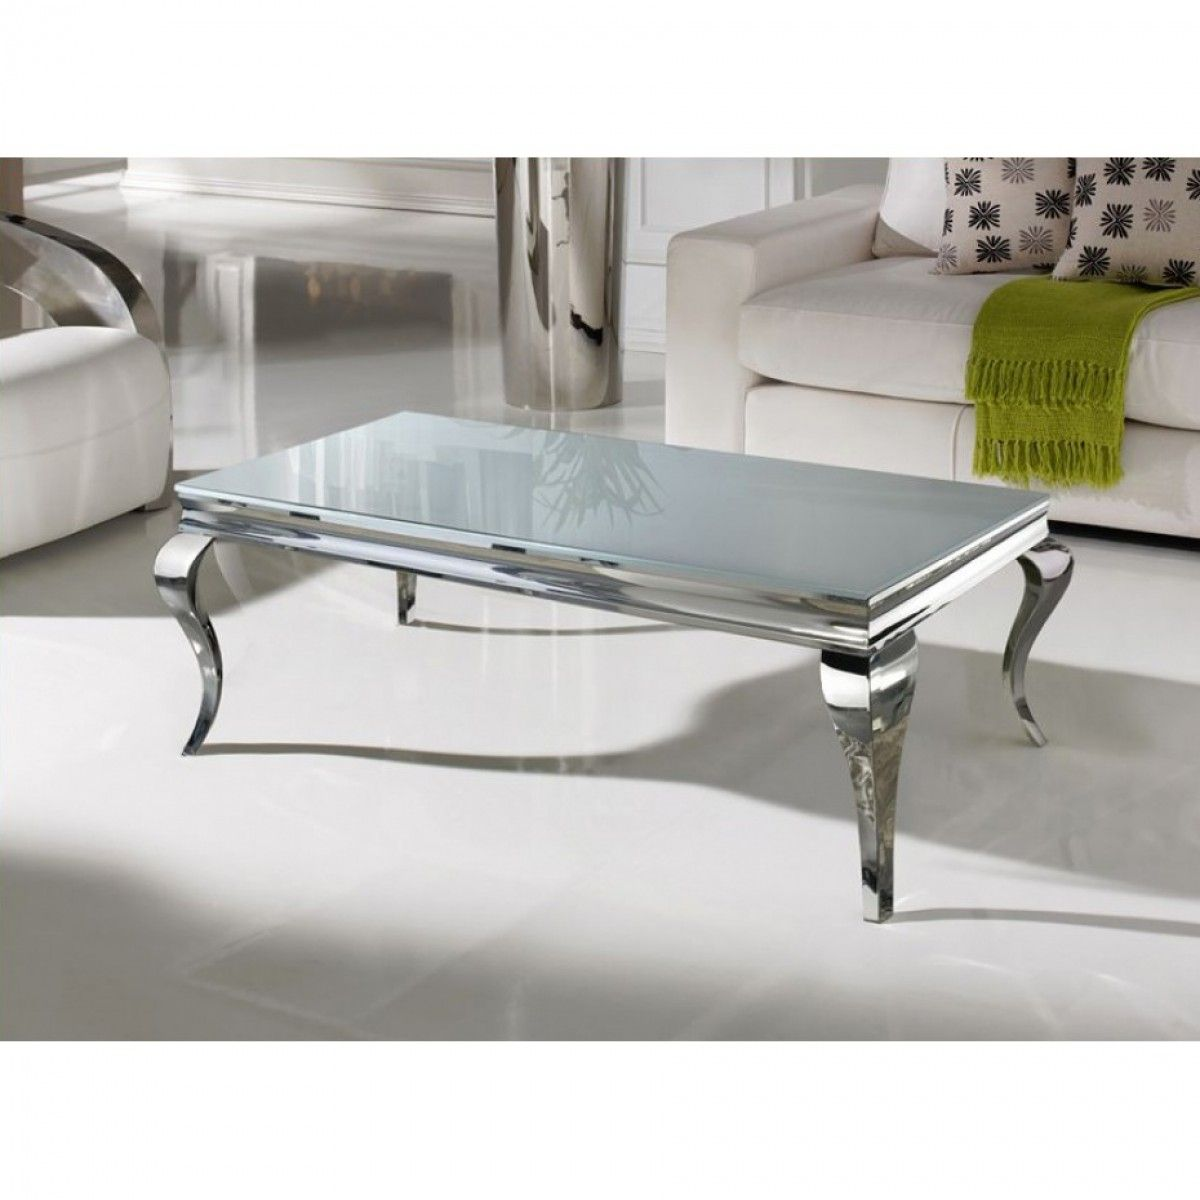 25a920be071a1 Table Basse Baroque Duchesse En Inox Et Verre Table Basse En